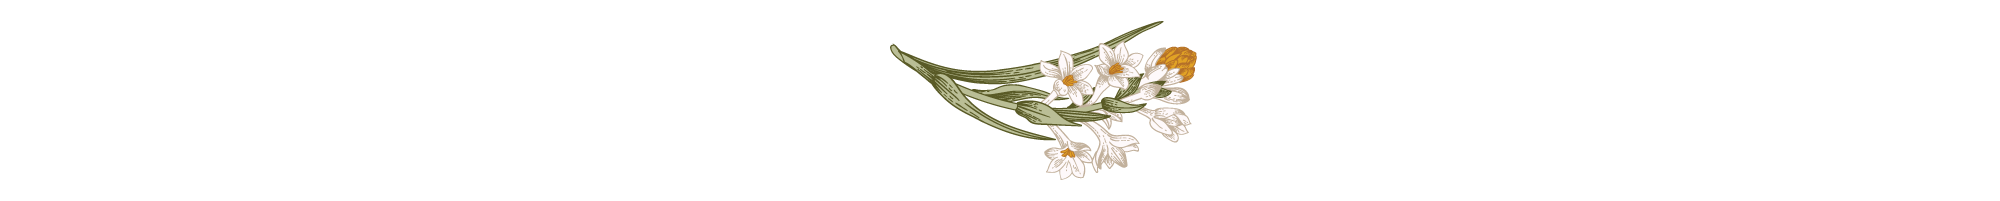 Divider-daisy-flower.png